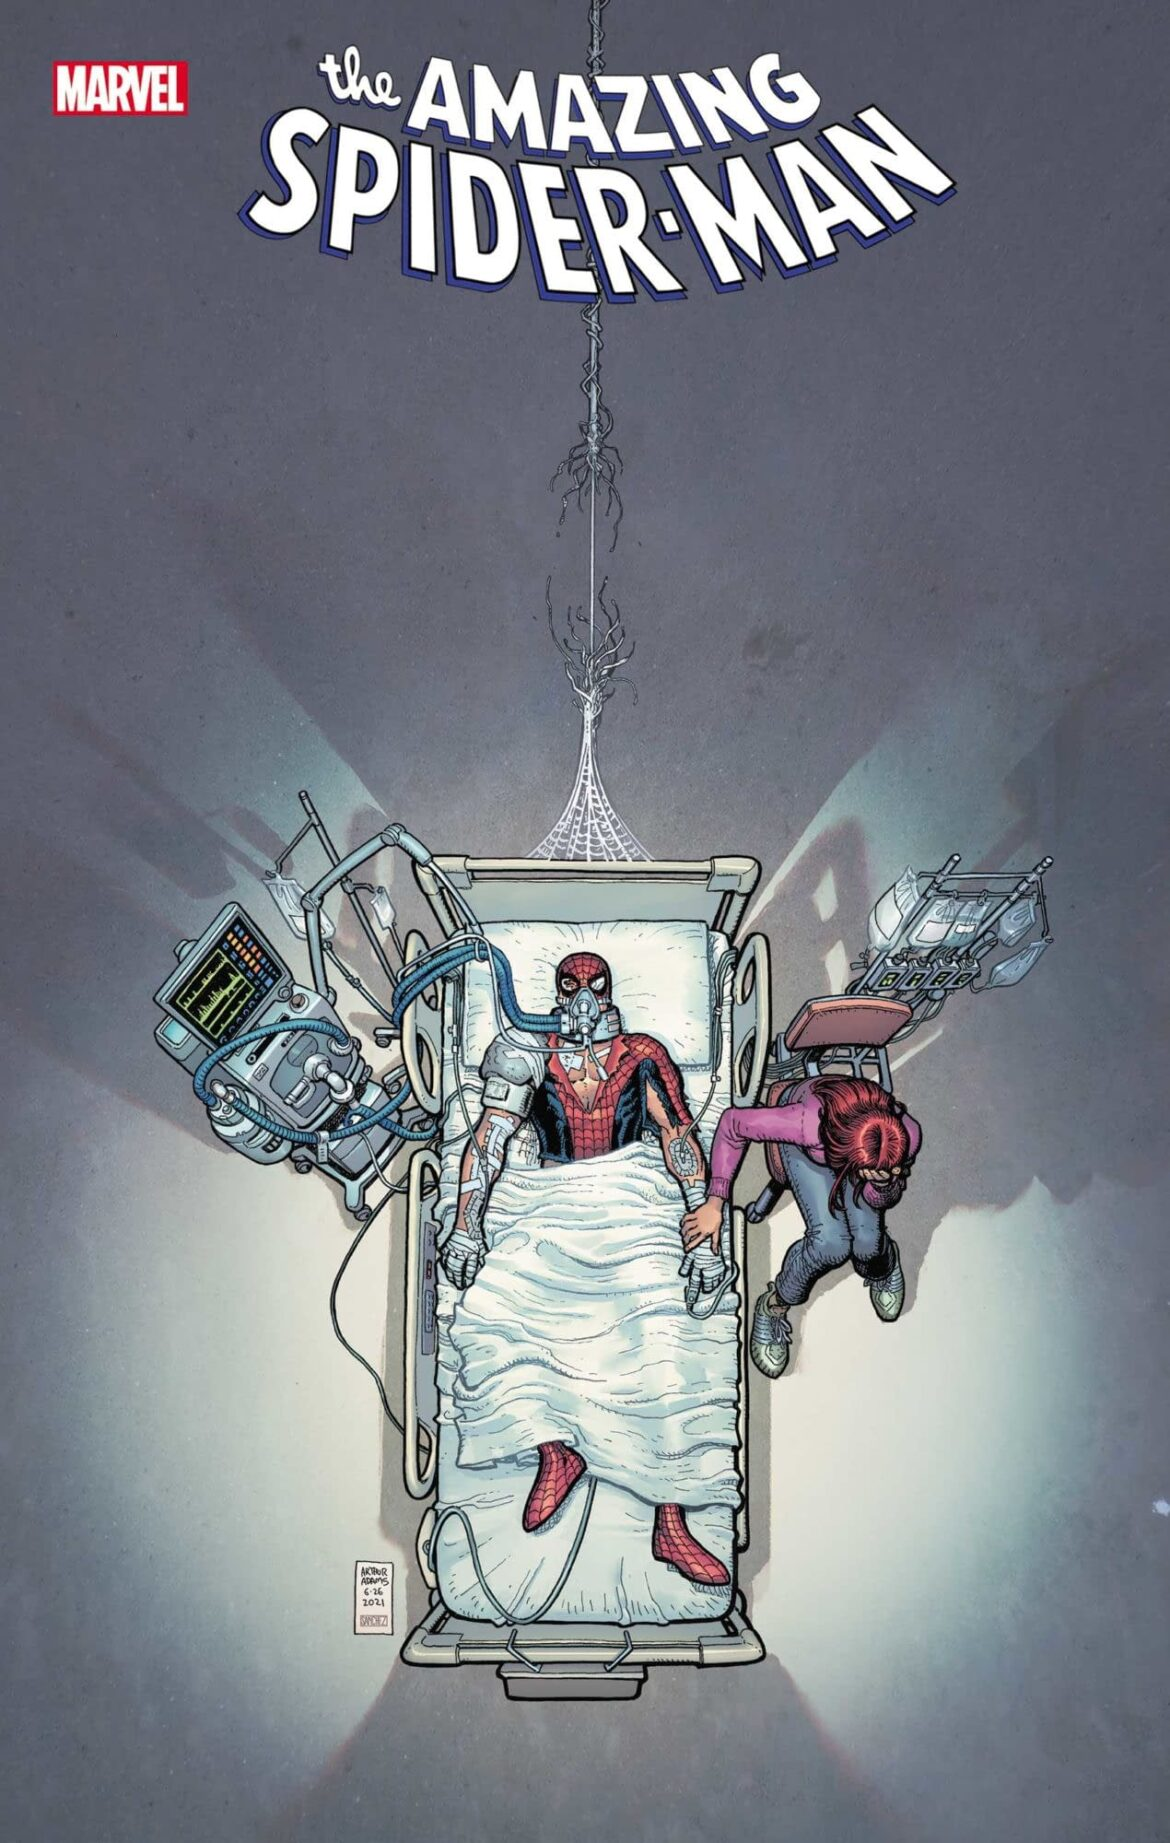 Amazing Spider-Man #76 Cover Teases Peter's Death